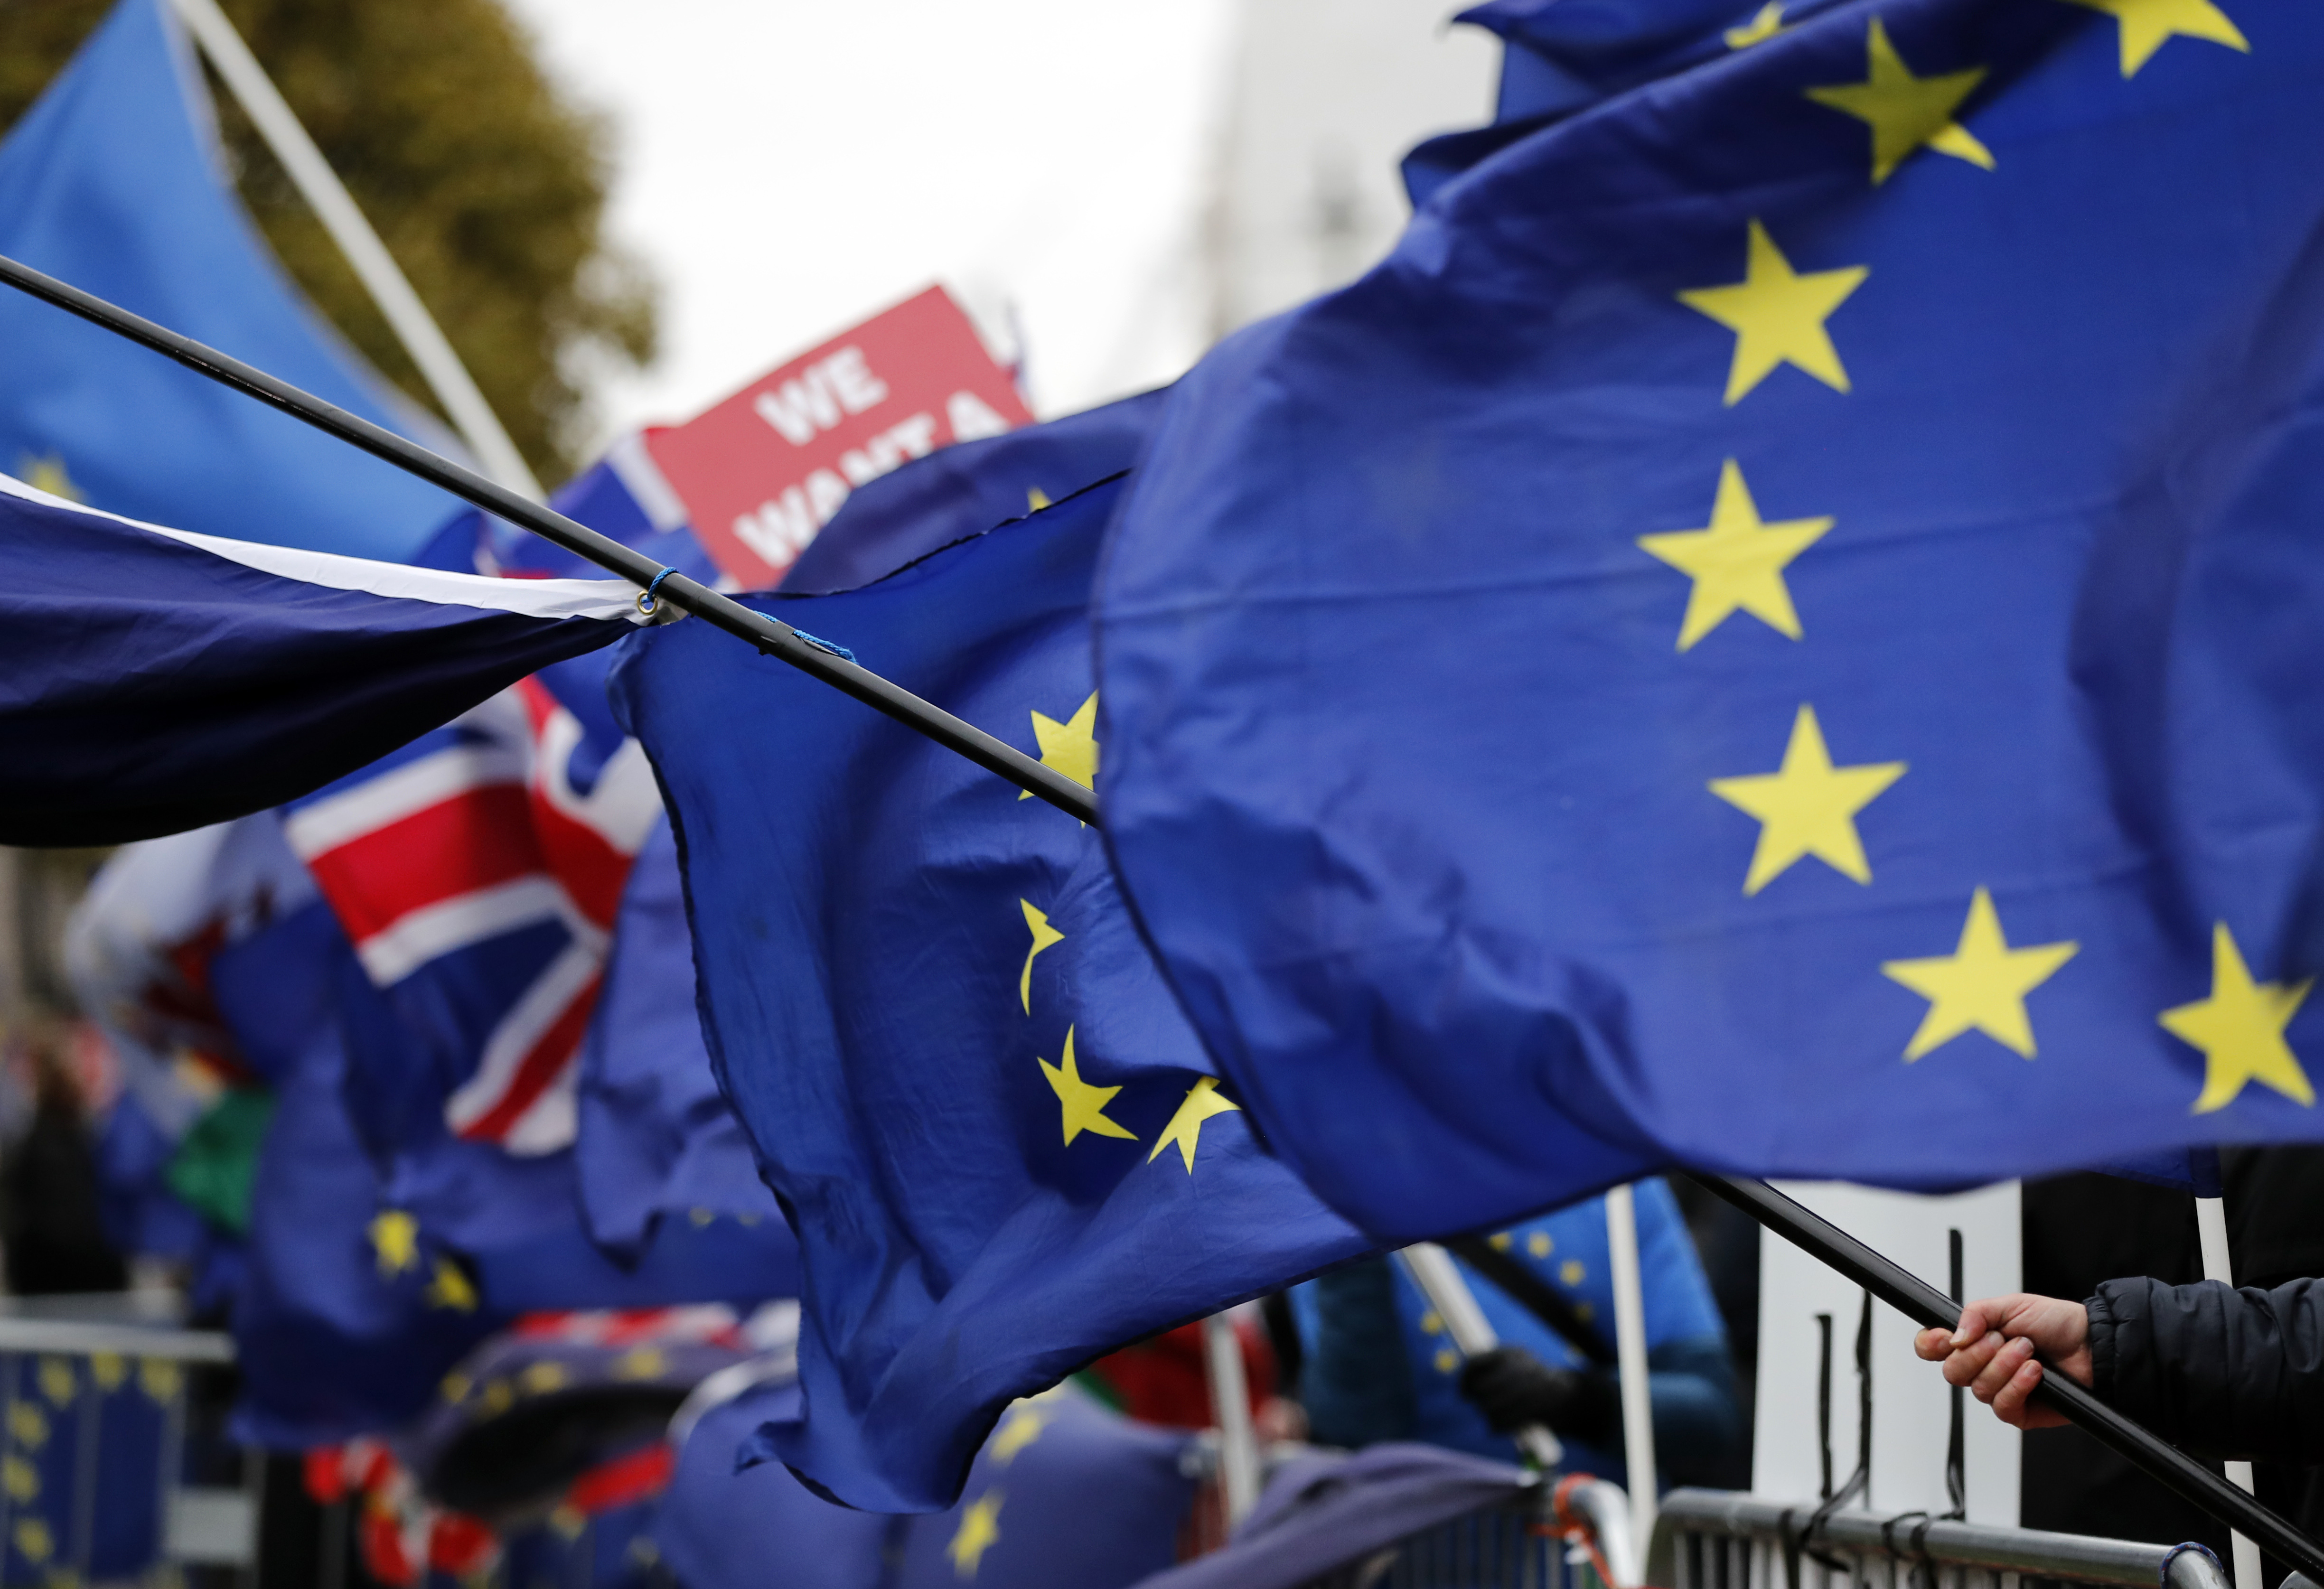 The EU and British flags are seen at the demonstrations area near the parliament building in London, Britain, Jan. 16, 2019.